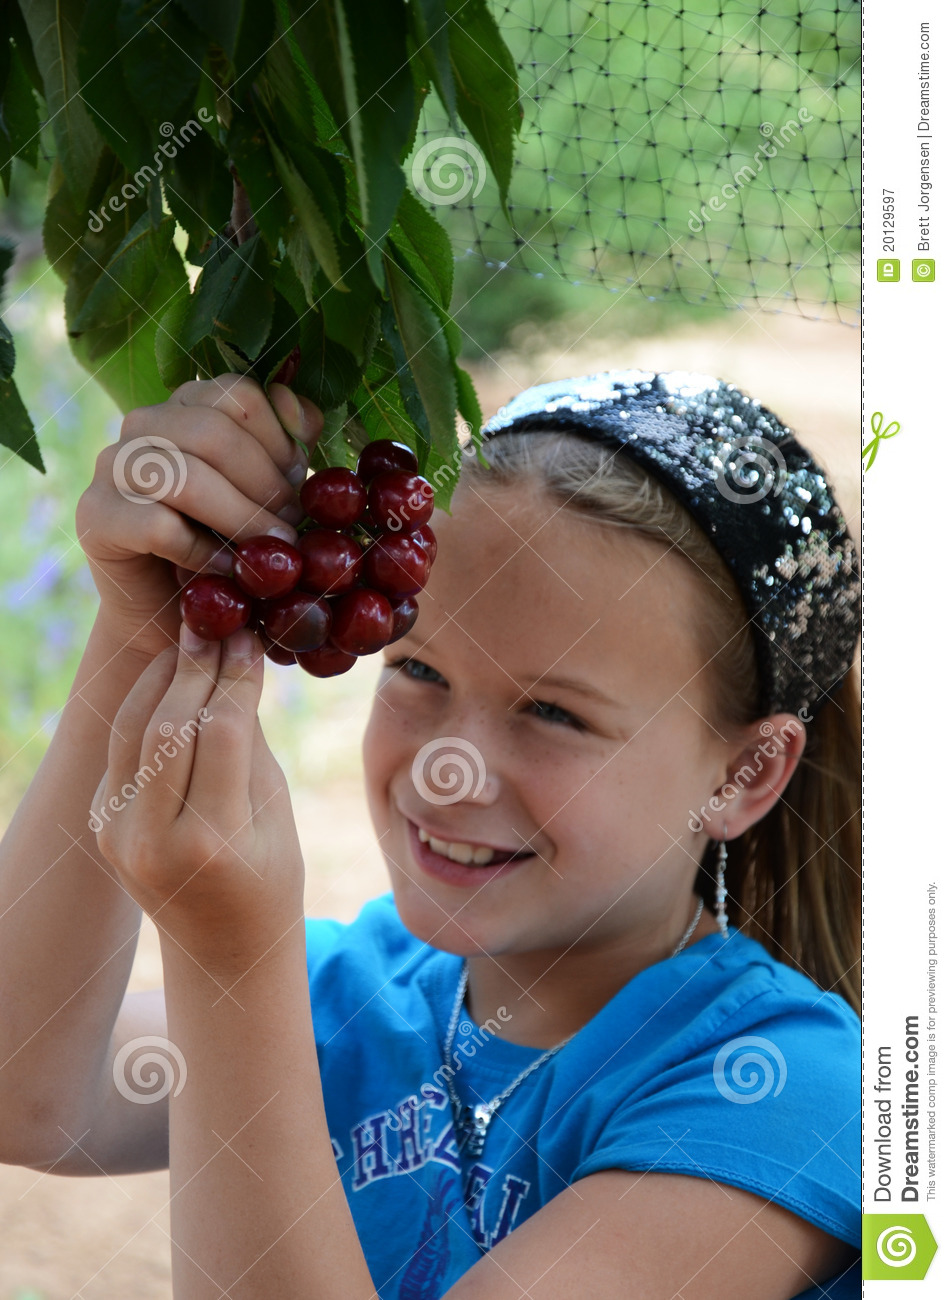 Girl Eating Cherries off of the Tree